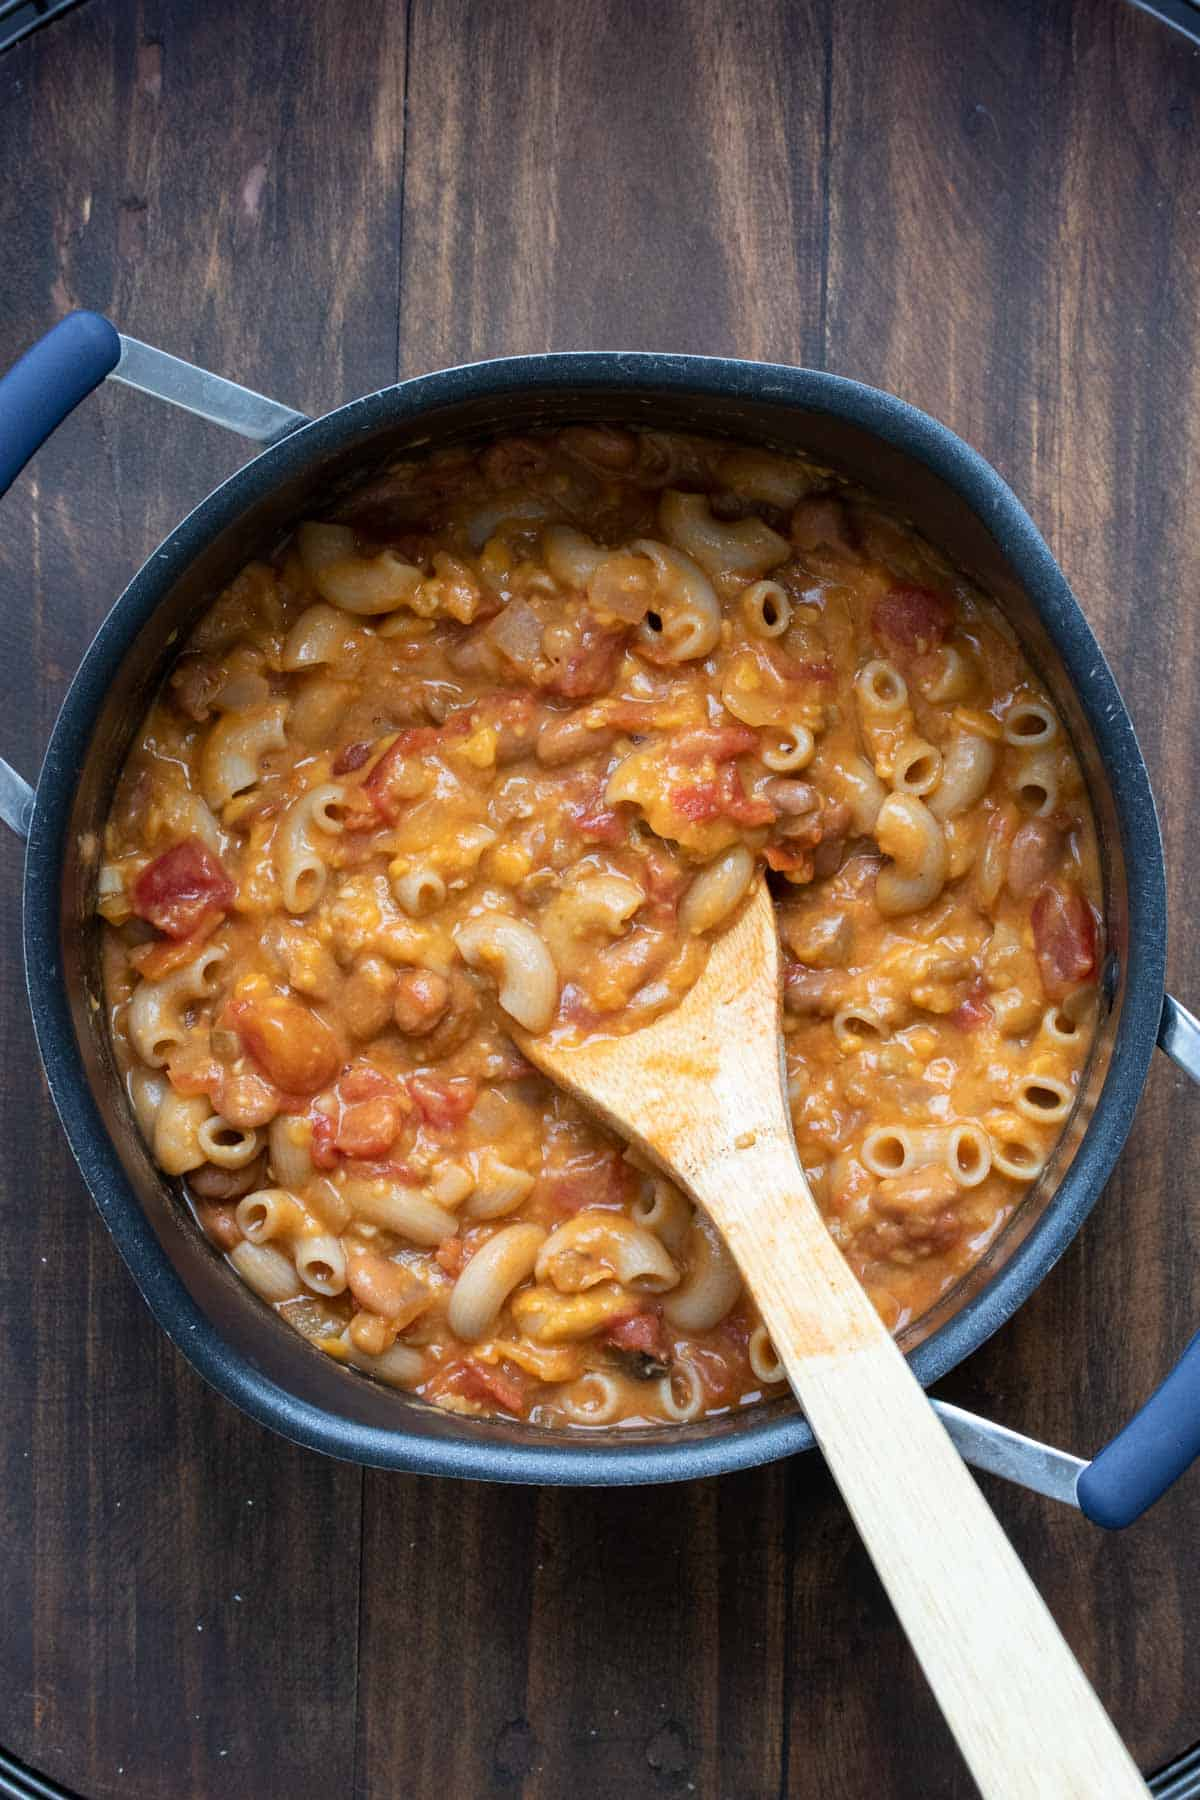 Wooden spoon mixing cheese sauce into a pot of chili mac